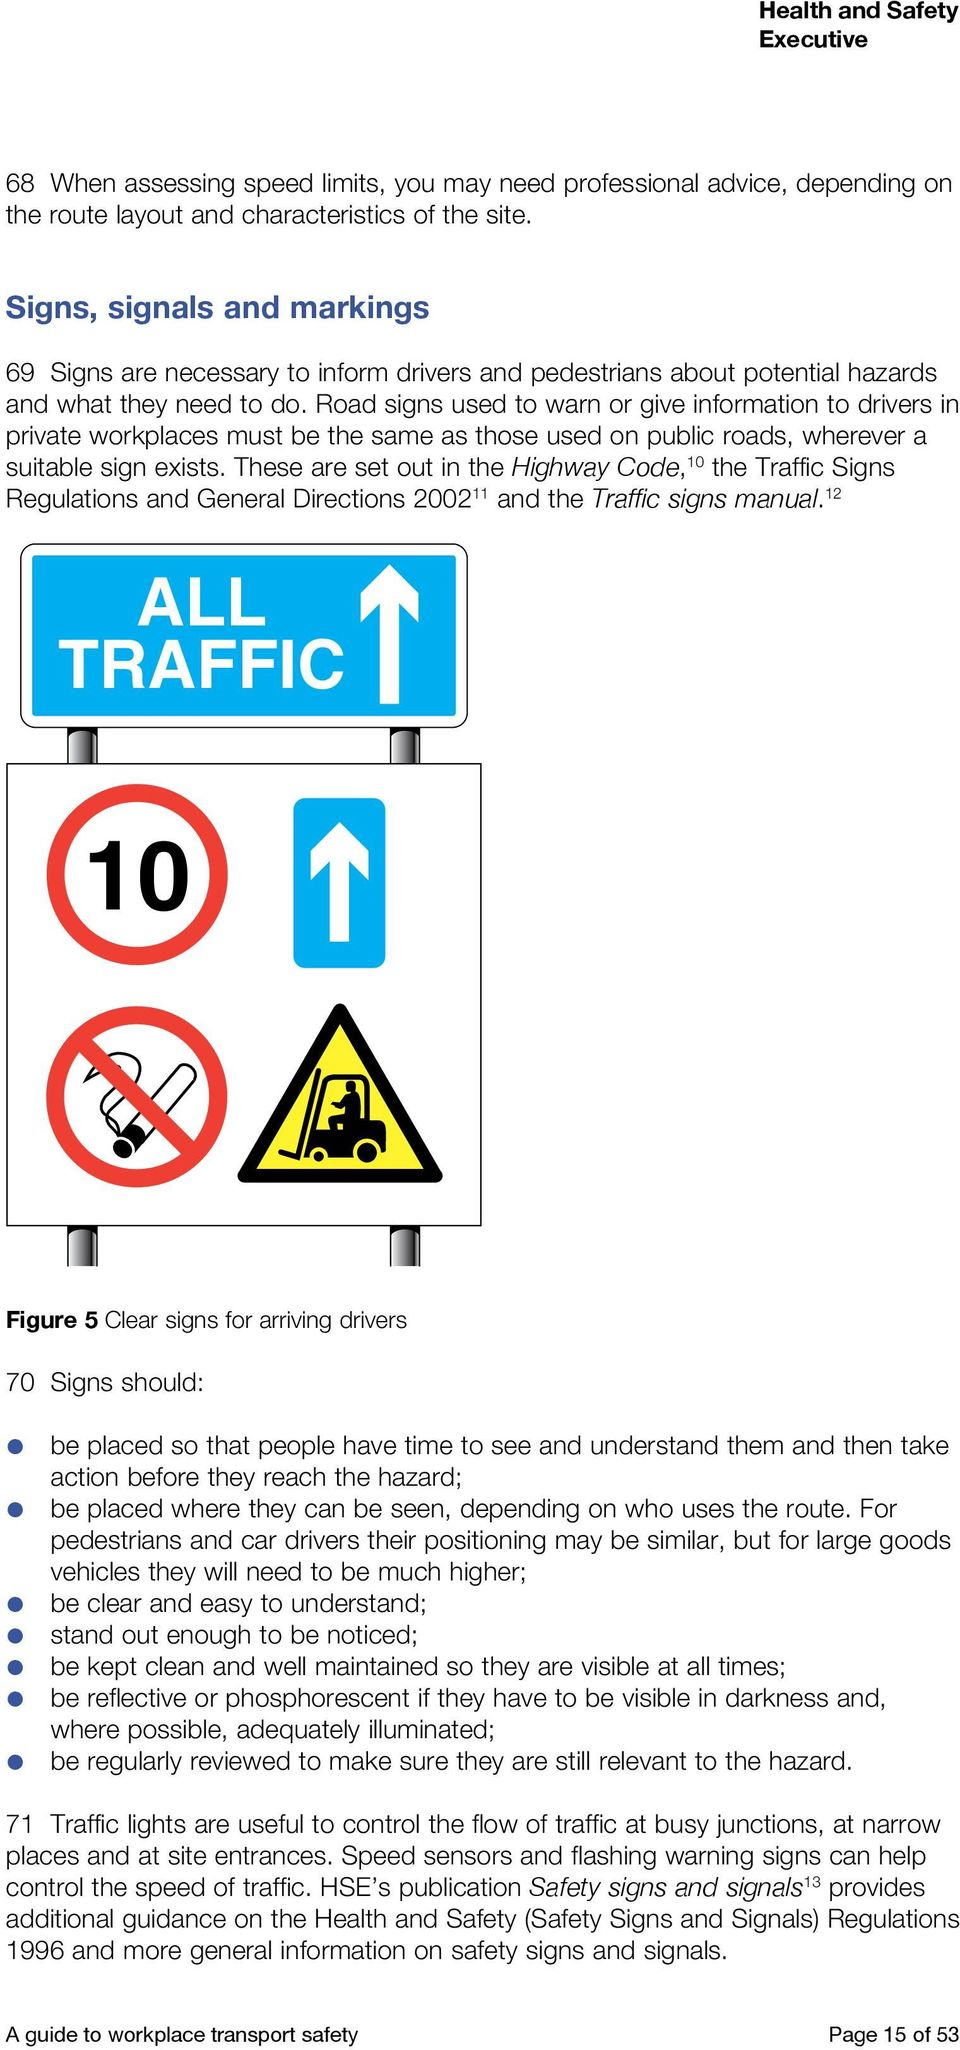 Road signs used to warn or give information to drivers in private workplaces must be the same as those used on public roads, wherever a suitable sign exists.